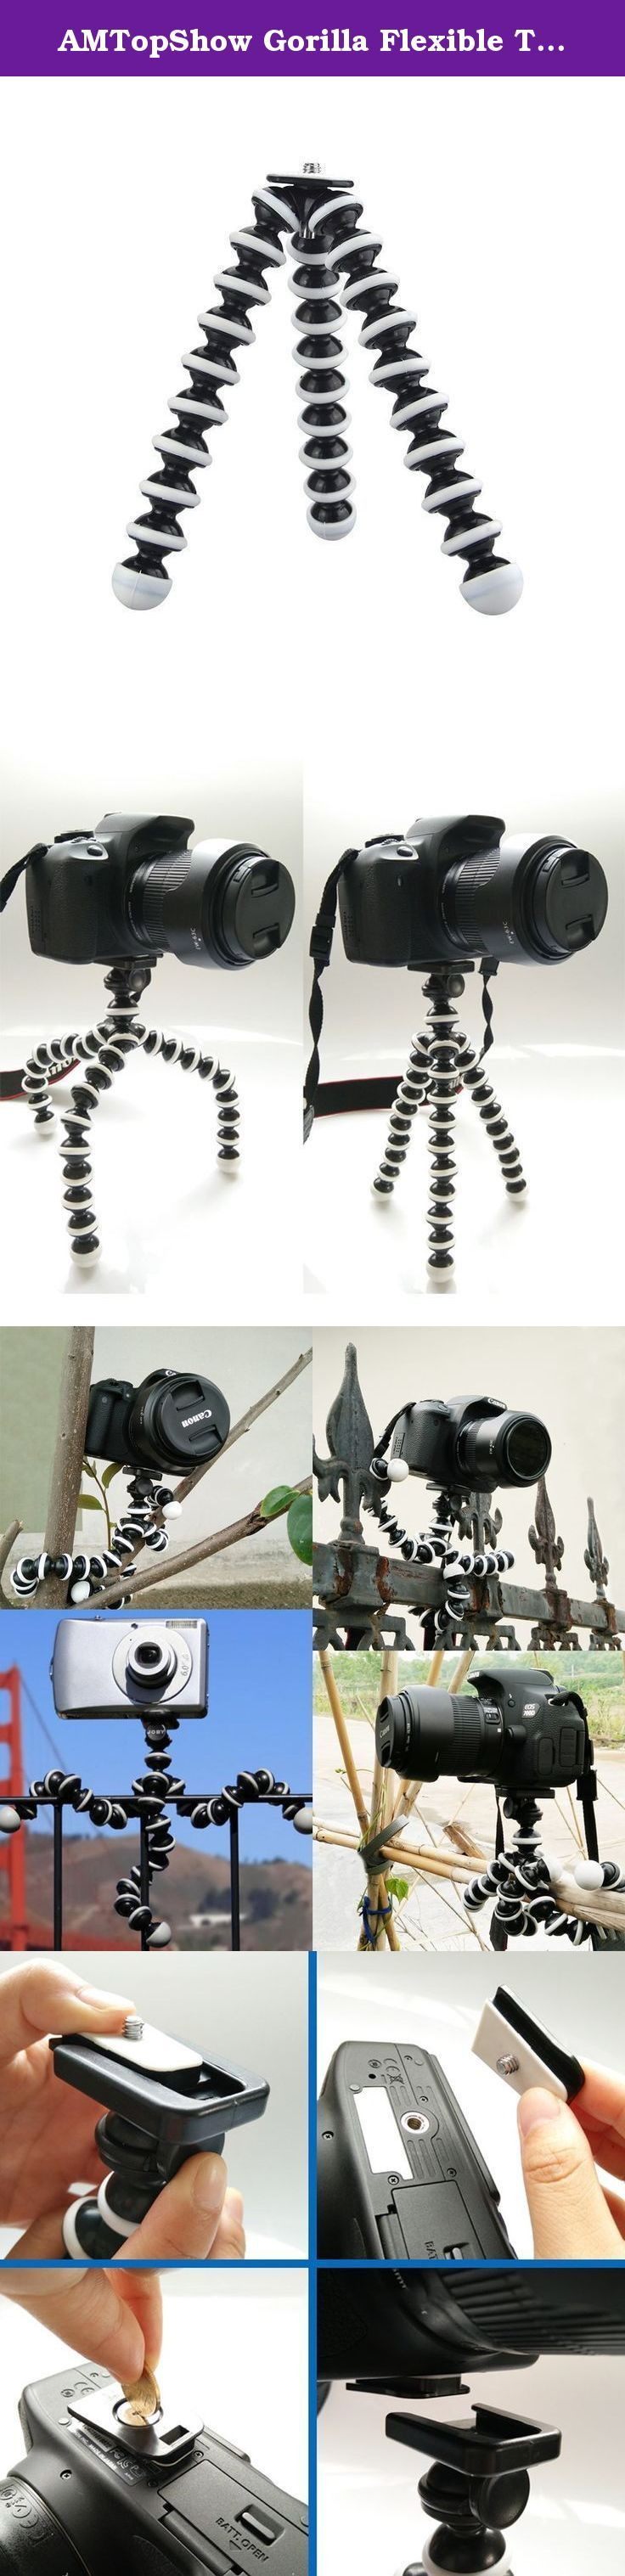 AMTopShow Gorilla Flexible Tripod,SLR Zoom Tripod for DSLR Cameras Perfect for Telephoto Lenses Lightweight, for Digital Cameras, Smartphones, Video Recorders travel compact,Portable and Flexible. A great mini Octopus tripod Bundle. The tripod can be used to hold your Camera or by attaching the included holder your iPhone, Android or Smartphone. Features: Ultra Flexible Will grip to almost anything Made from hard wearing plastic with metal adapter Each leg has 9 balls and sockets for a…